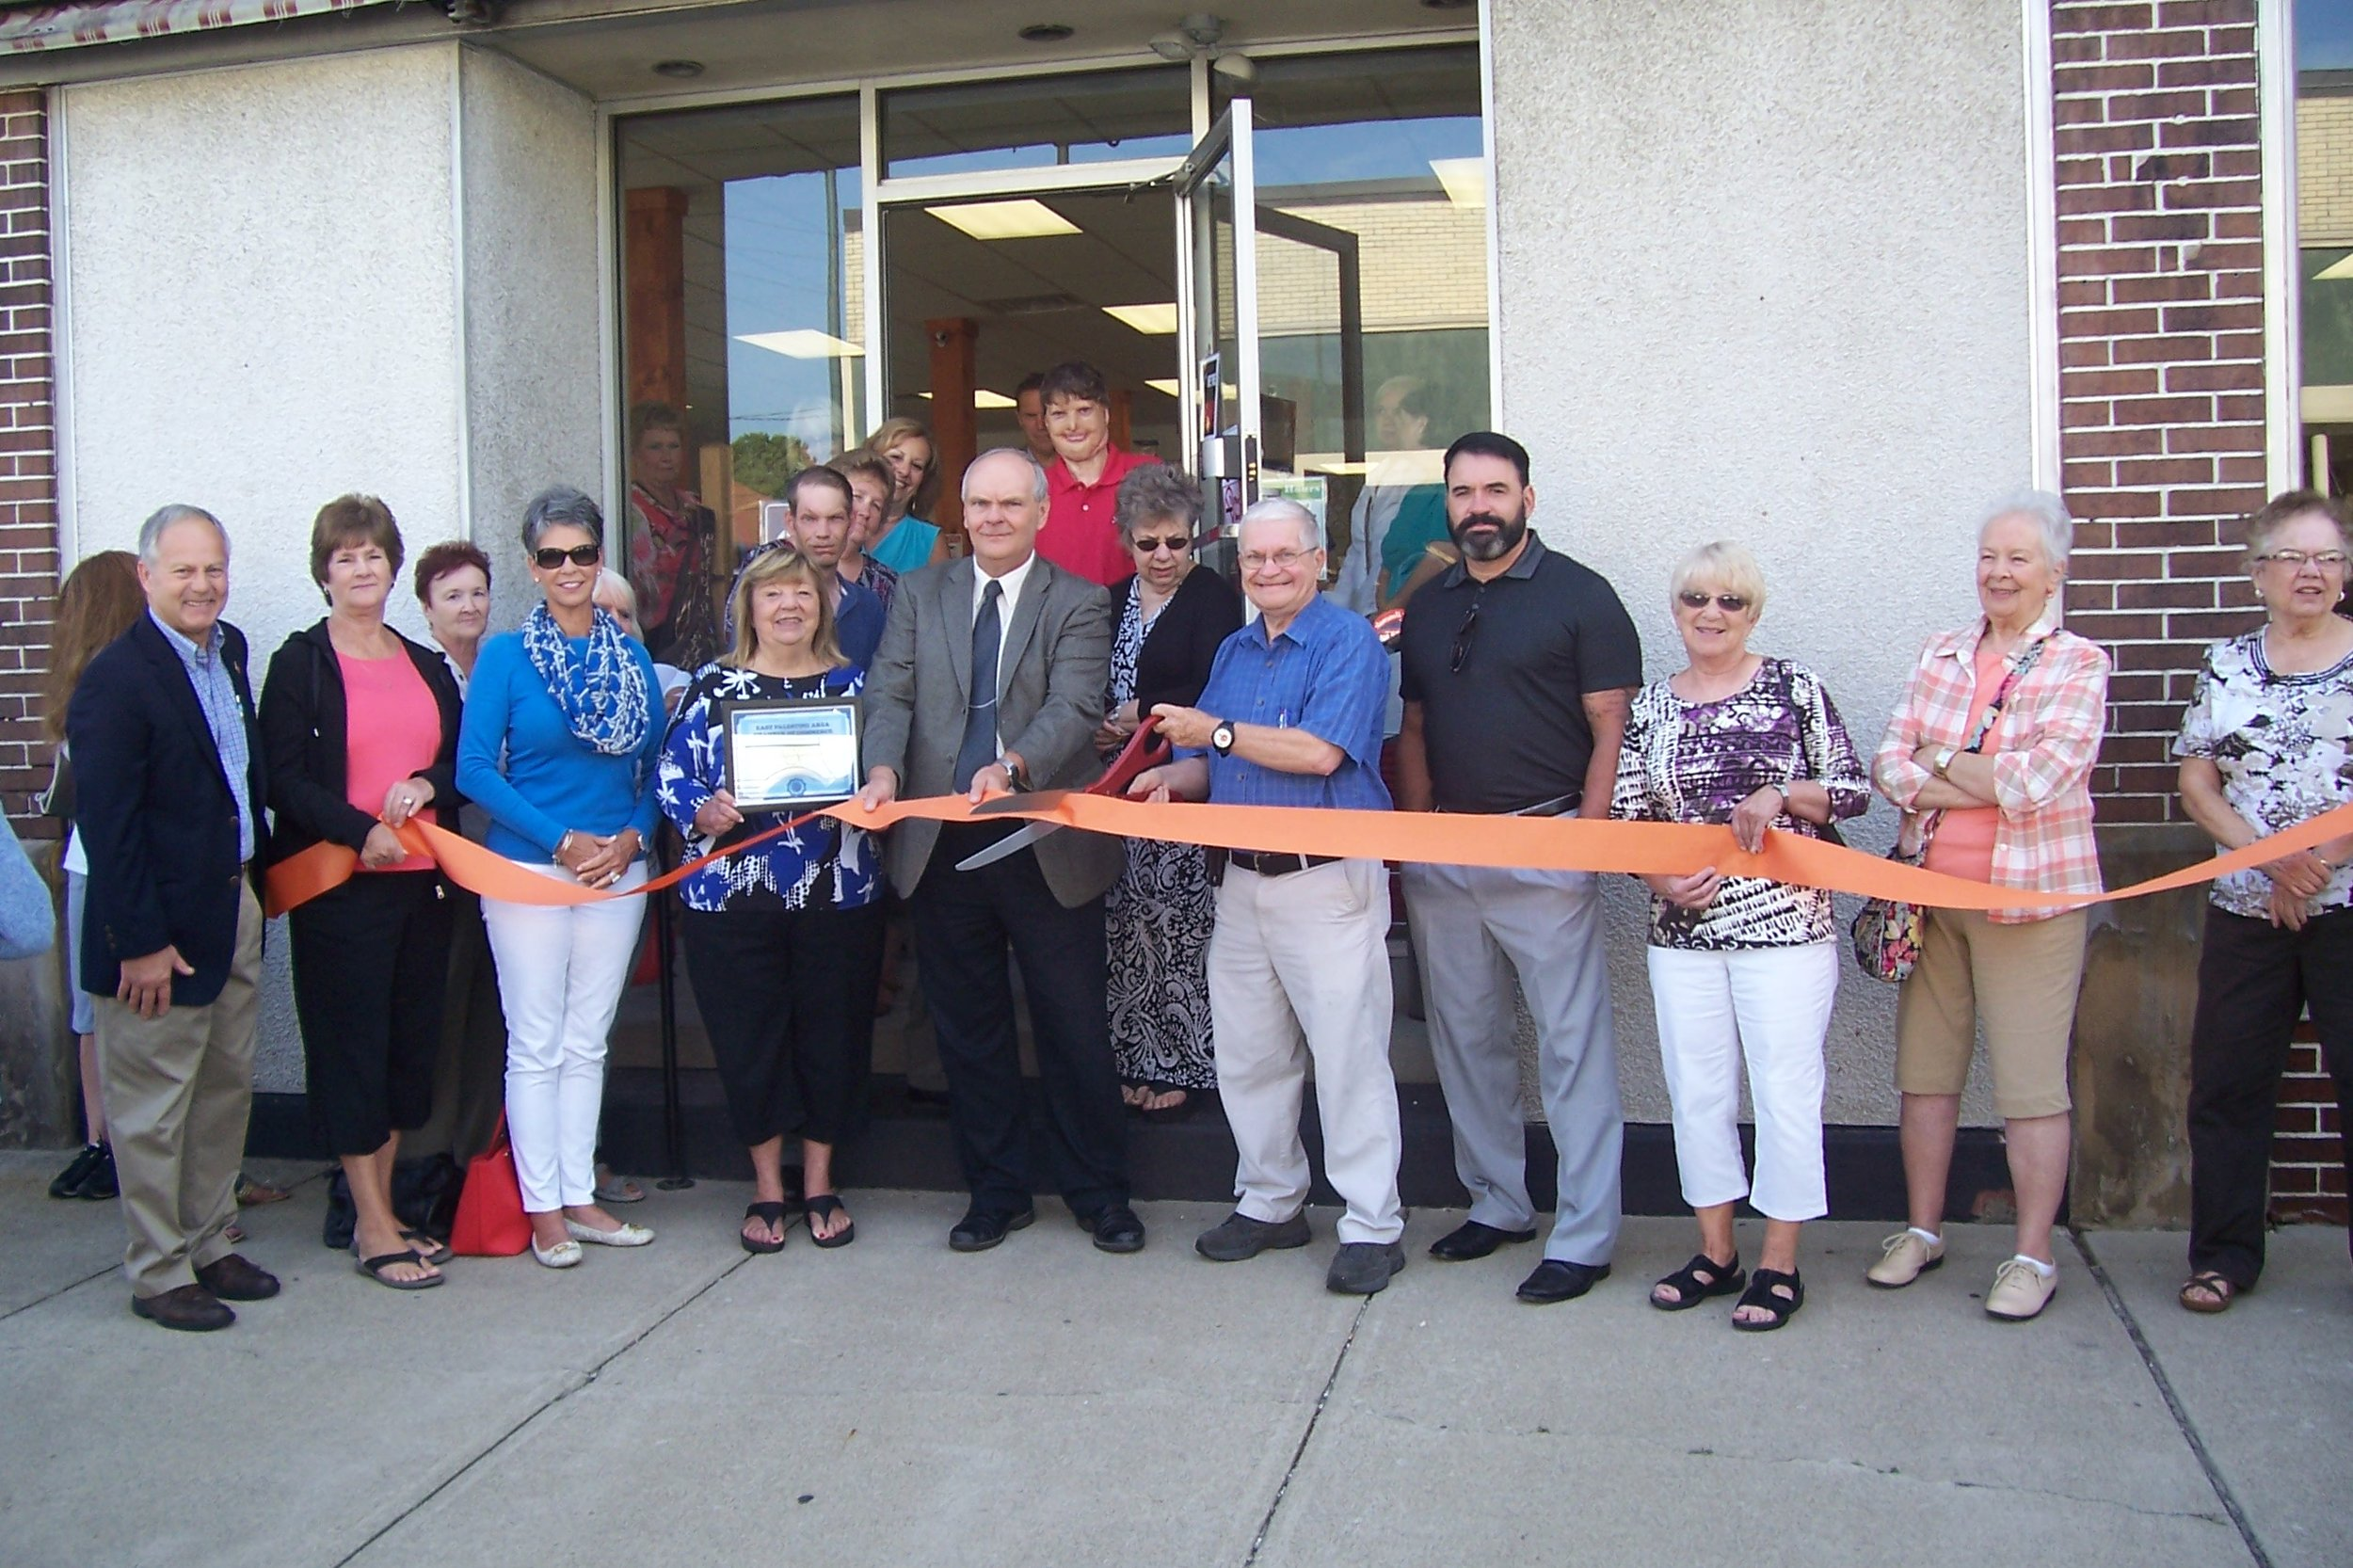 The Chamber celebrates local business successes. Click here to see recent awards and ribbon cutting ceremonies